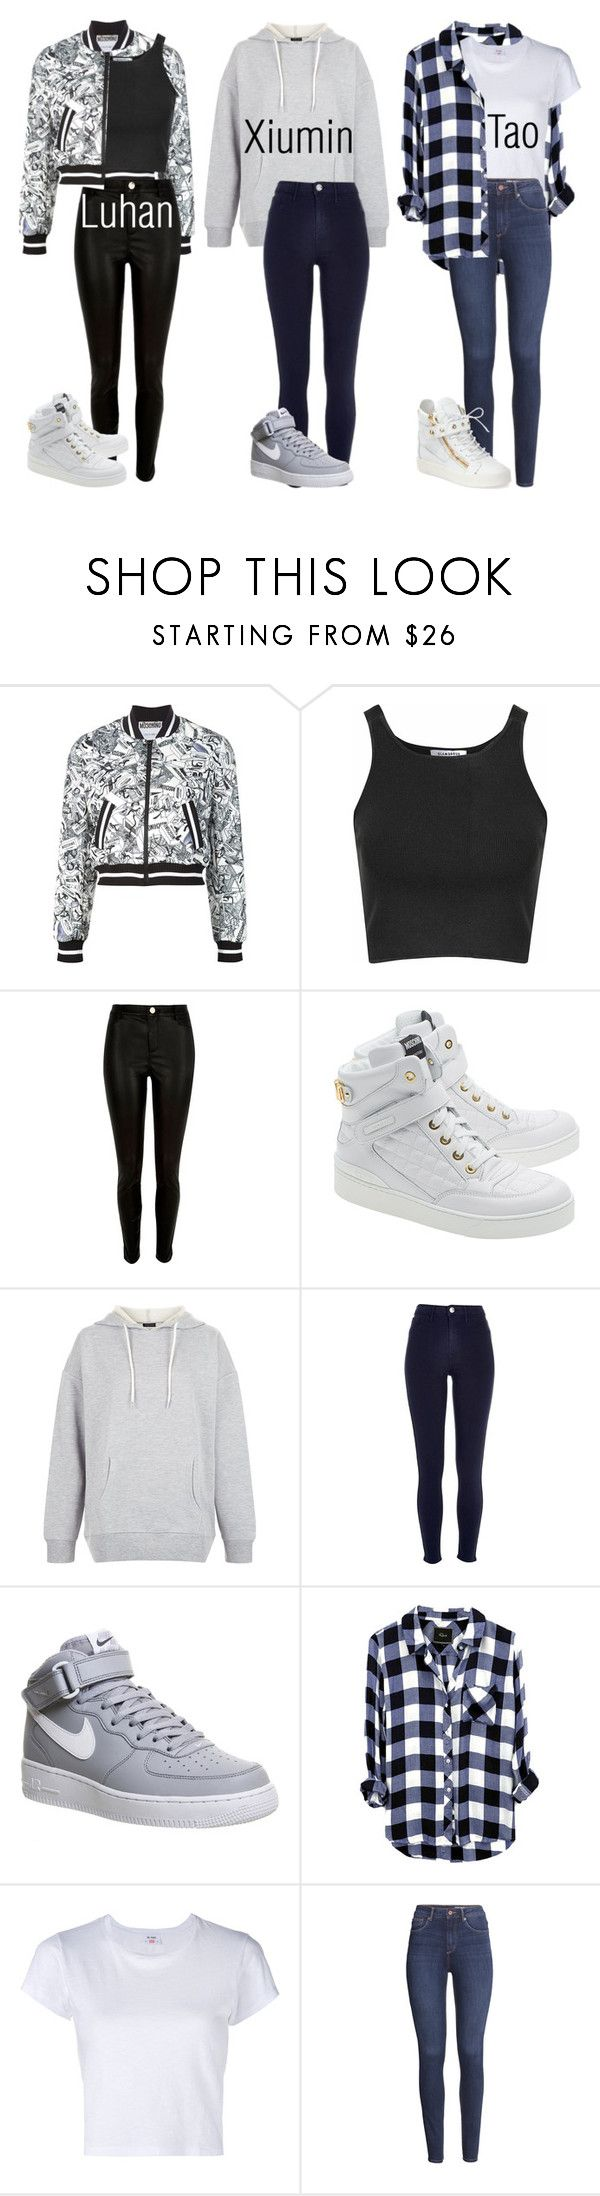 Exo Inspired Outfits Pt.4 by fangirlkaly8102 ❤ liked on Polyvore featuring Moschino, Glamorous, River Island, New Look, NIKE, RE/DONE, HM, Giuseppe Zanotti, kpop and EXO